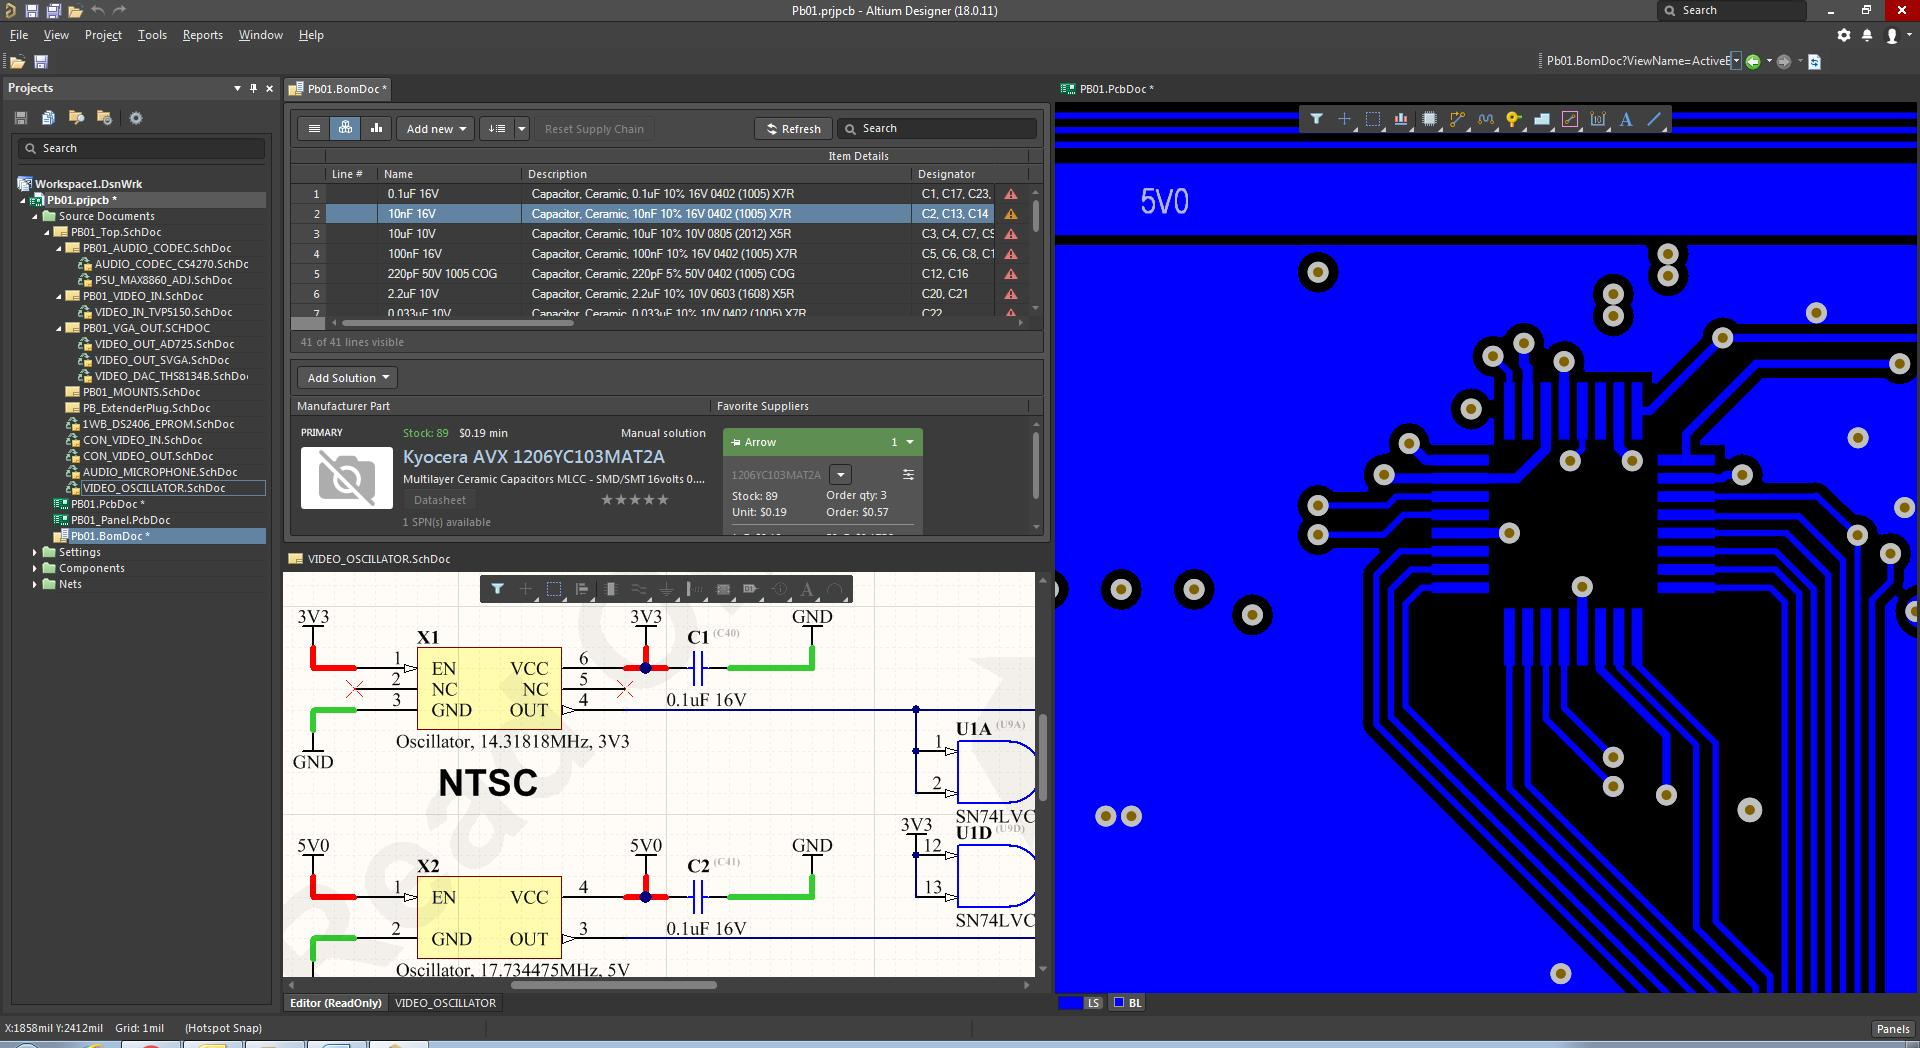 Screenshot of the integrated design environment in Altium Designer